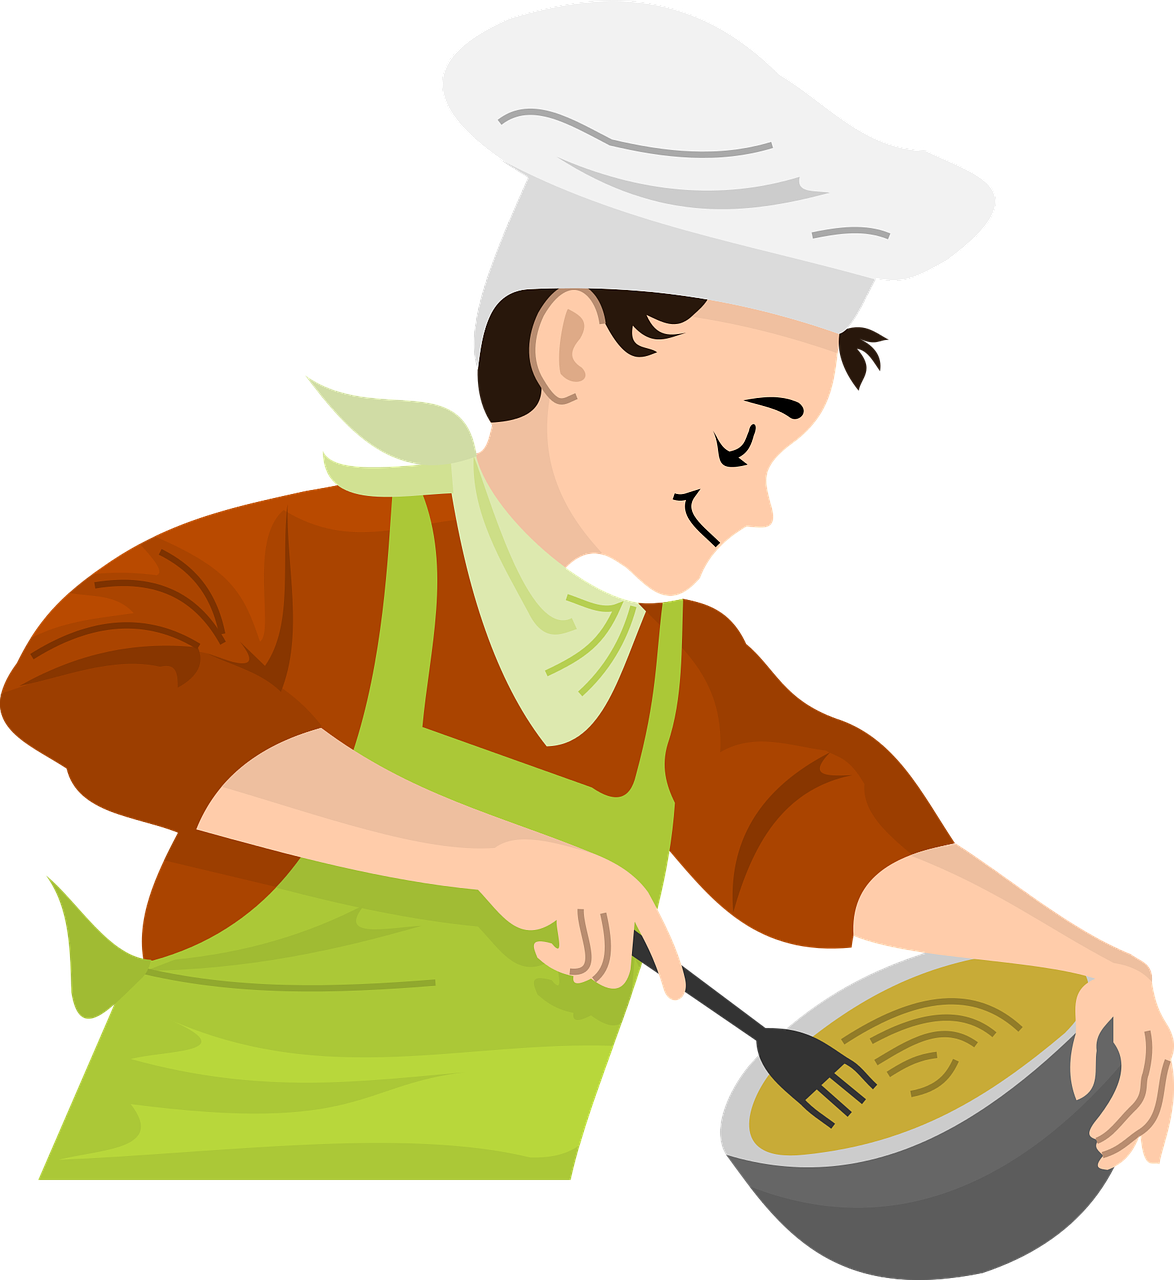 Smiling person cooking